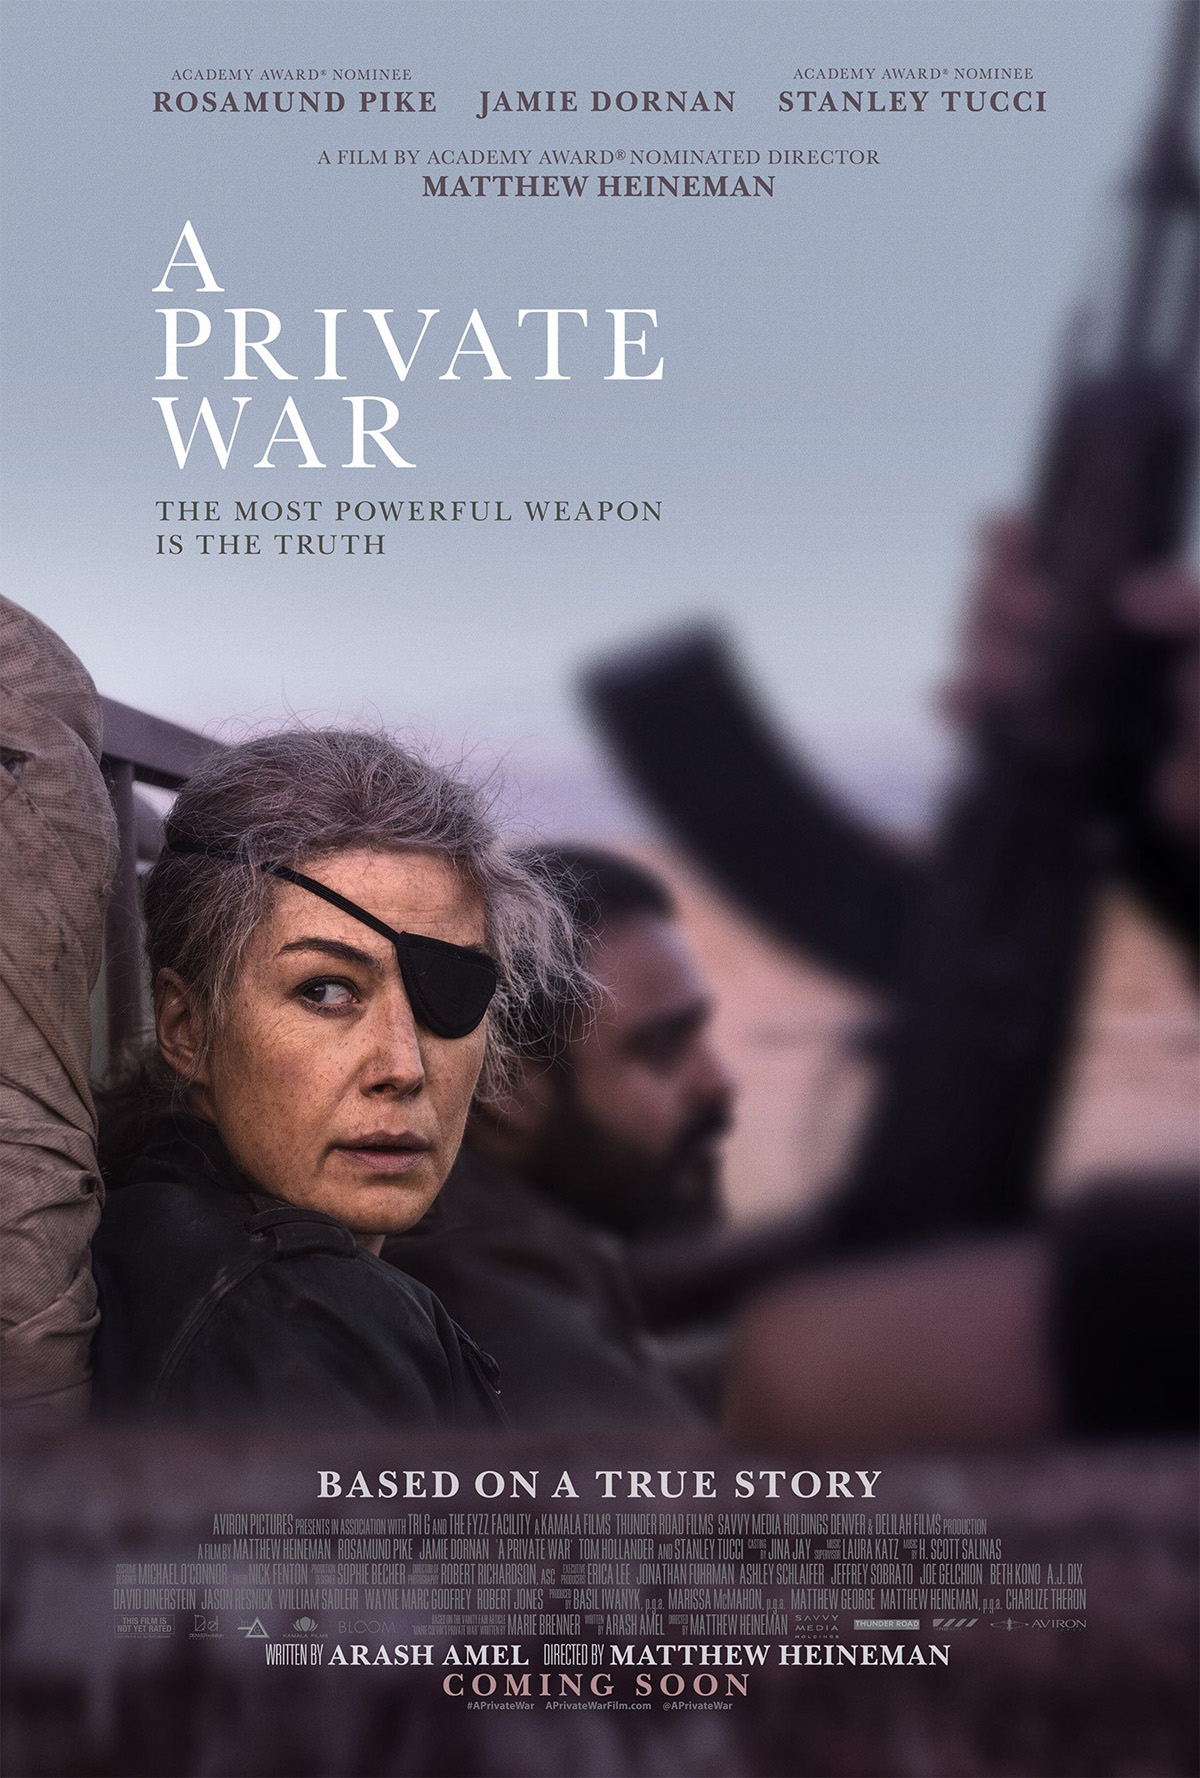 A Private War Trailer & Poster